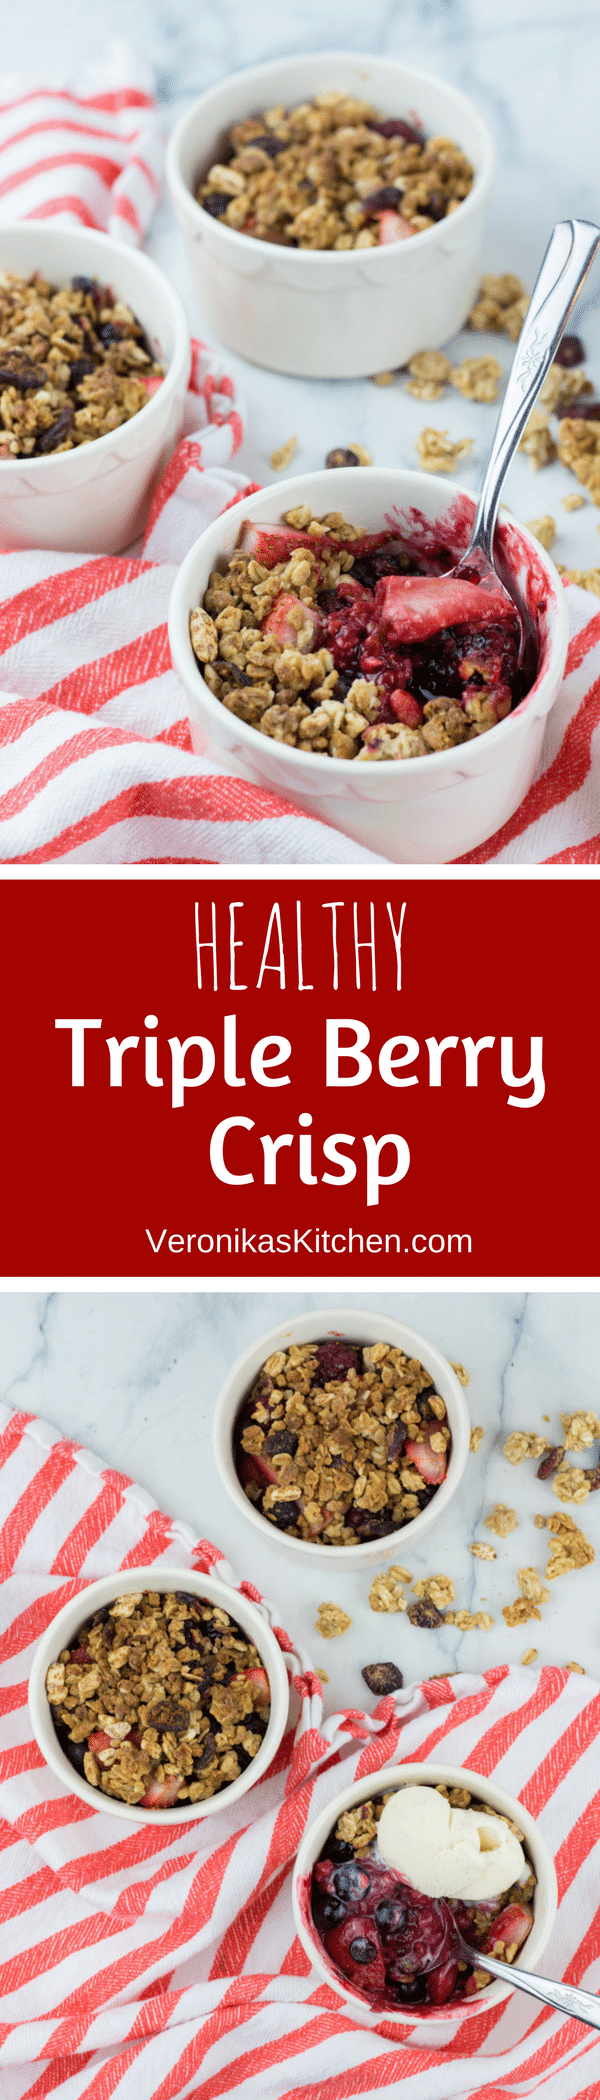 Healthy Triple Berry Crisp recipe baked in individual ramekins is a perfect treat for your friends and family. This easy to make, no-refined sugar, no-butter dessert will become your new favorite!